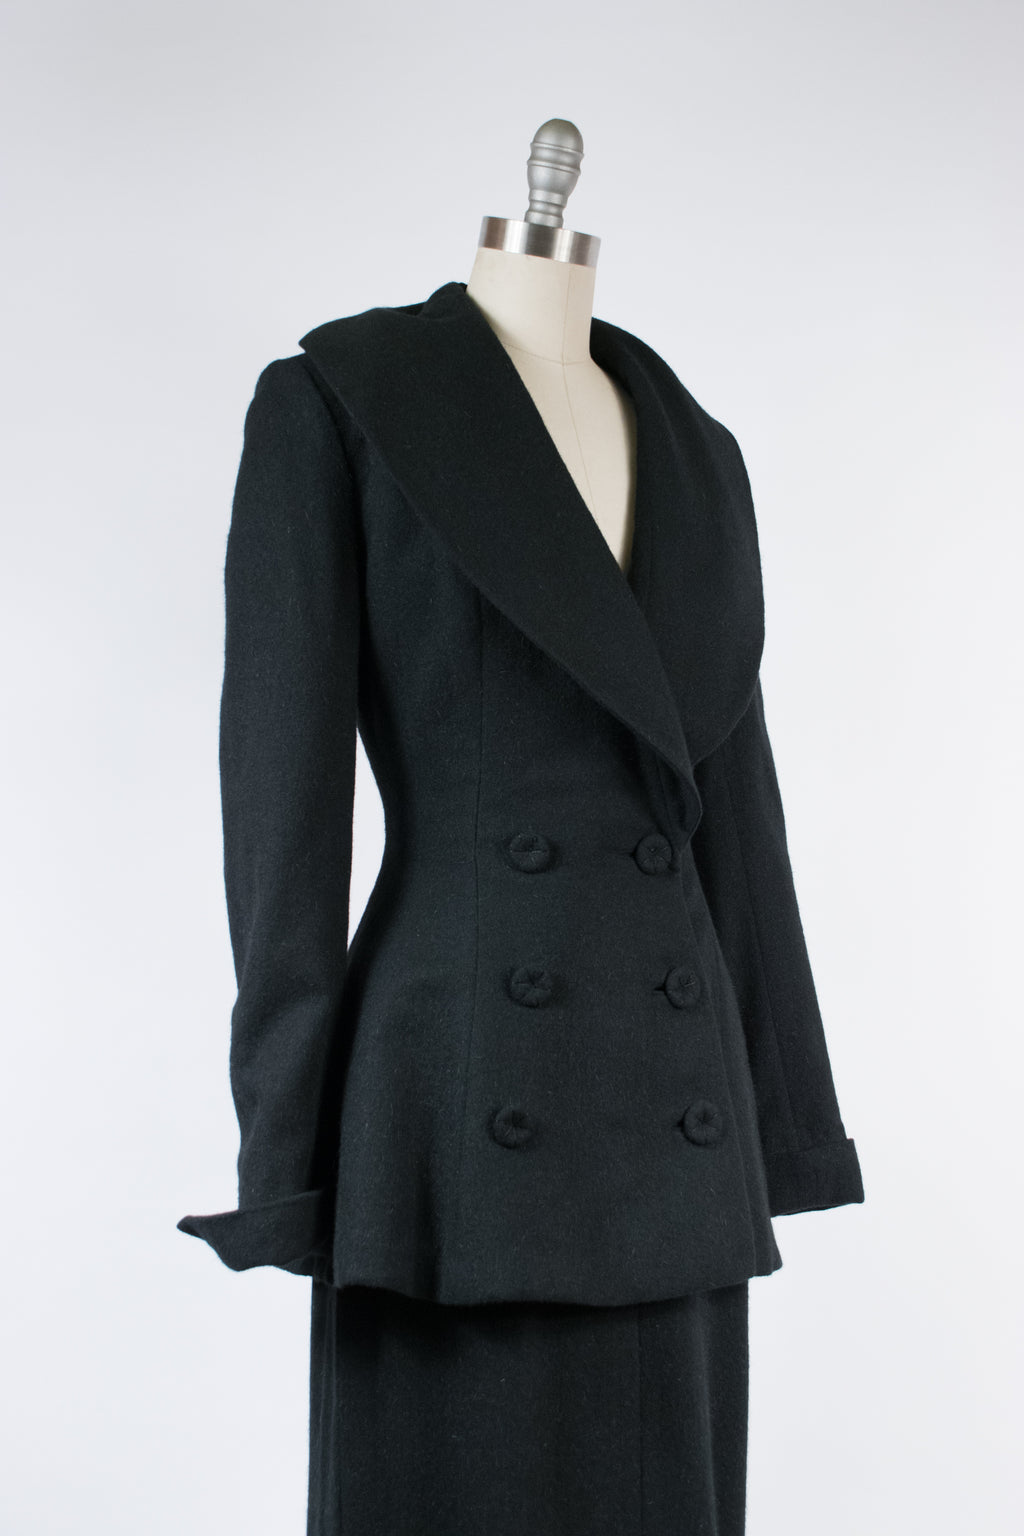 "Killer 1950s Extreme Hourglass Wasp-Waisted New Look Suit with Massive Collar, From the Over 5'7"" Shop"